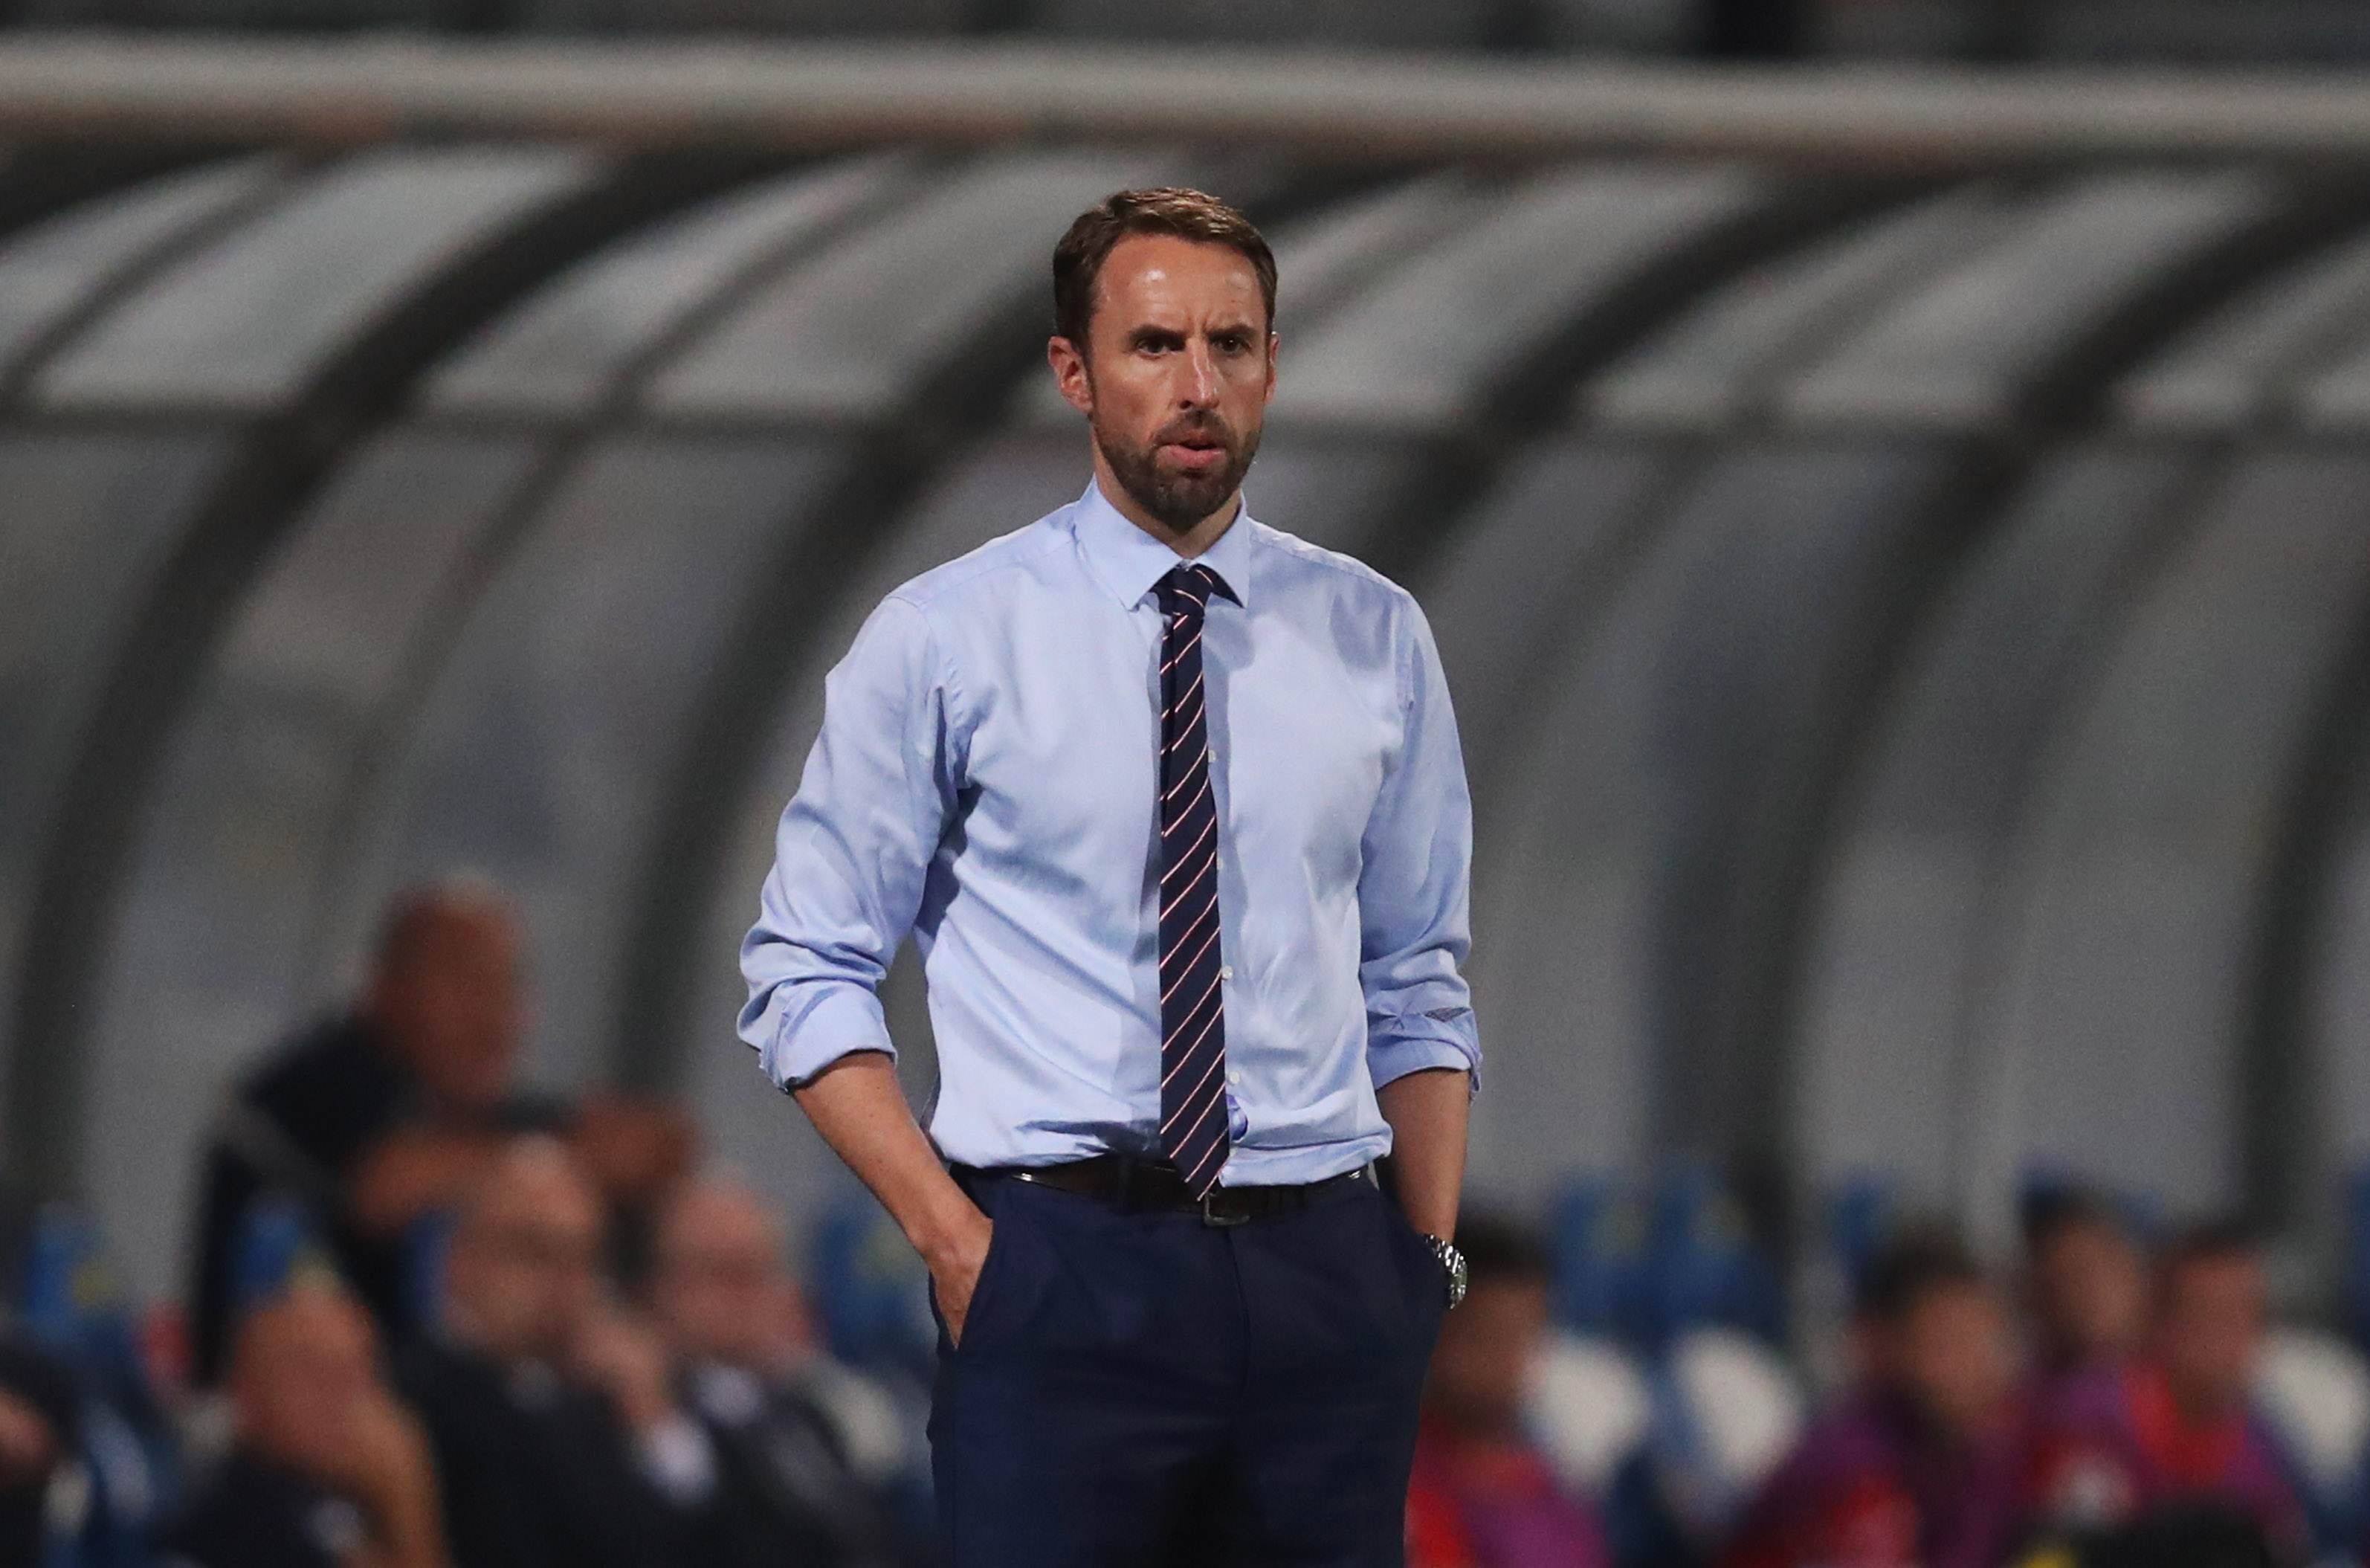 Gareth Southgate says no nation at the World Cup is playing better